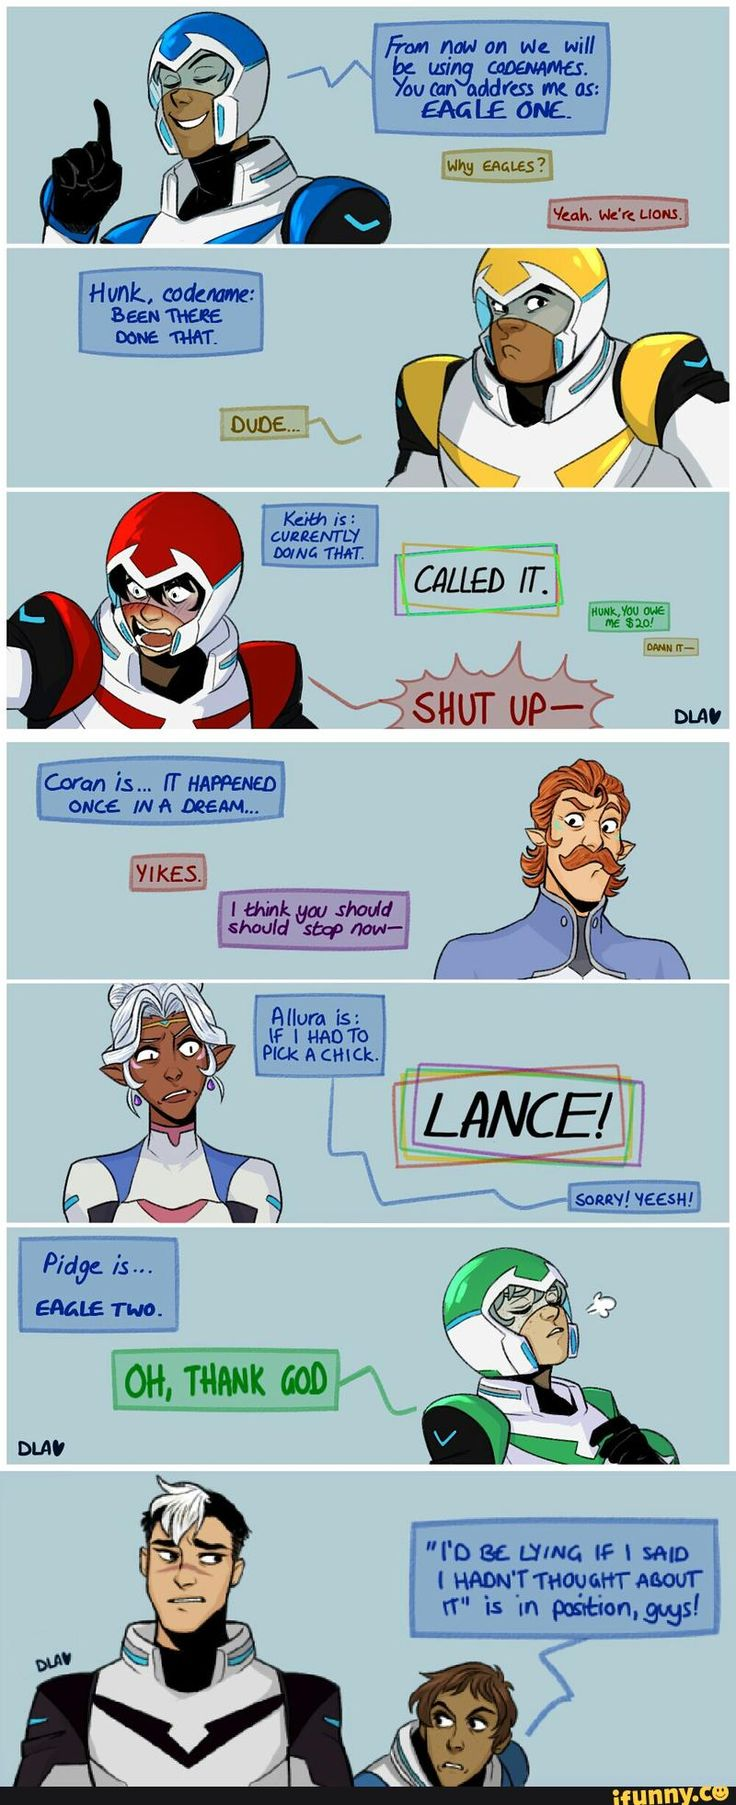 I don't ship Klance but this is great